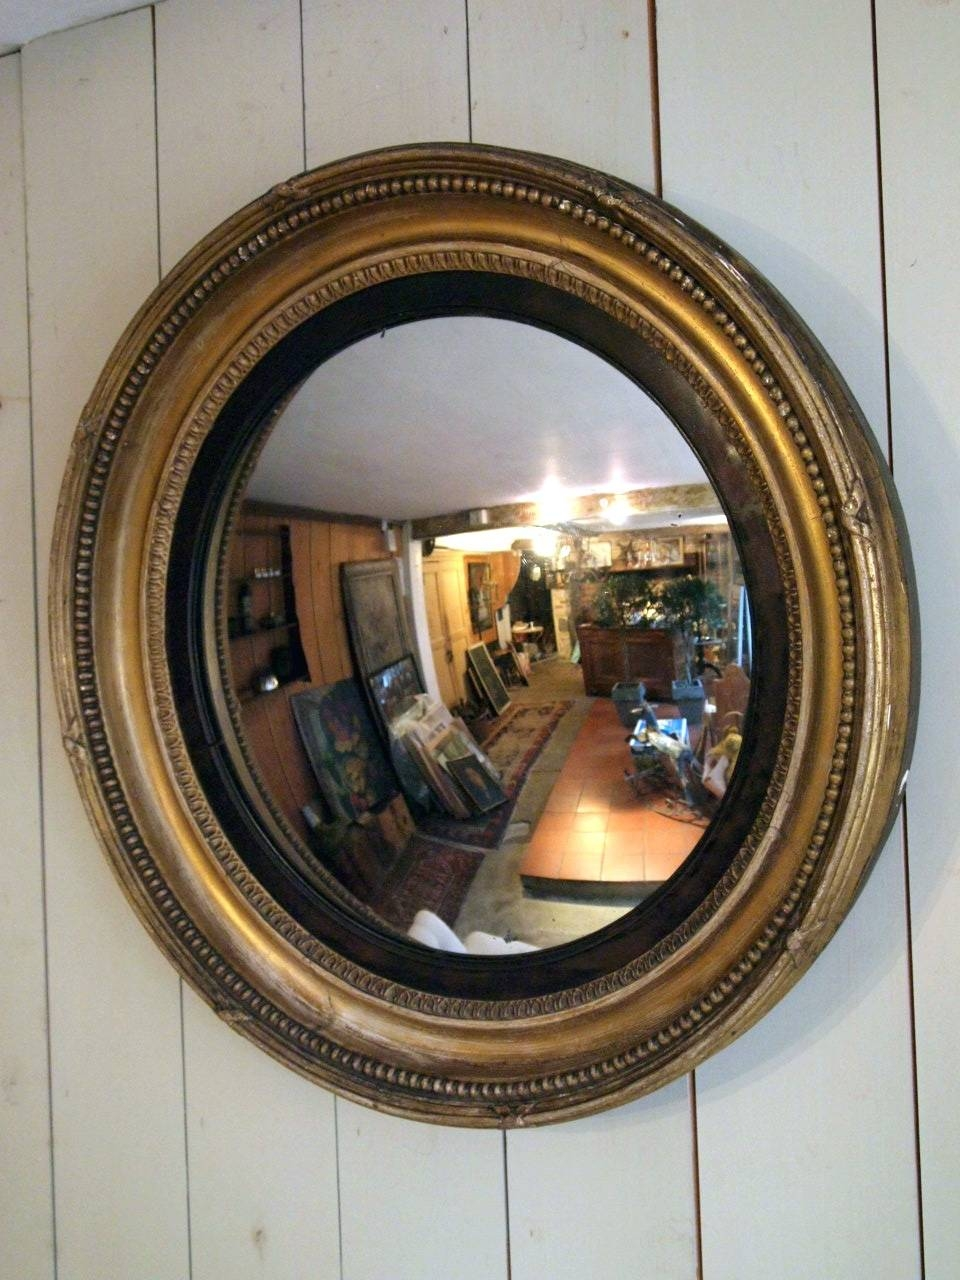 Round Convex Mirrors For Walls | Vanity And Nightstand Decoration intended for Decorative Convex Mirrors (Image 20 of 25)